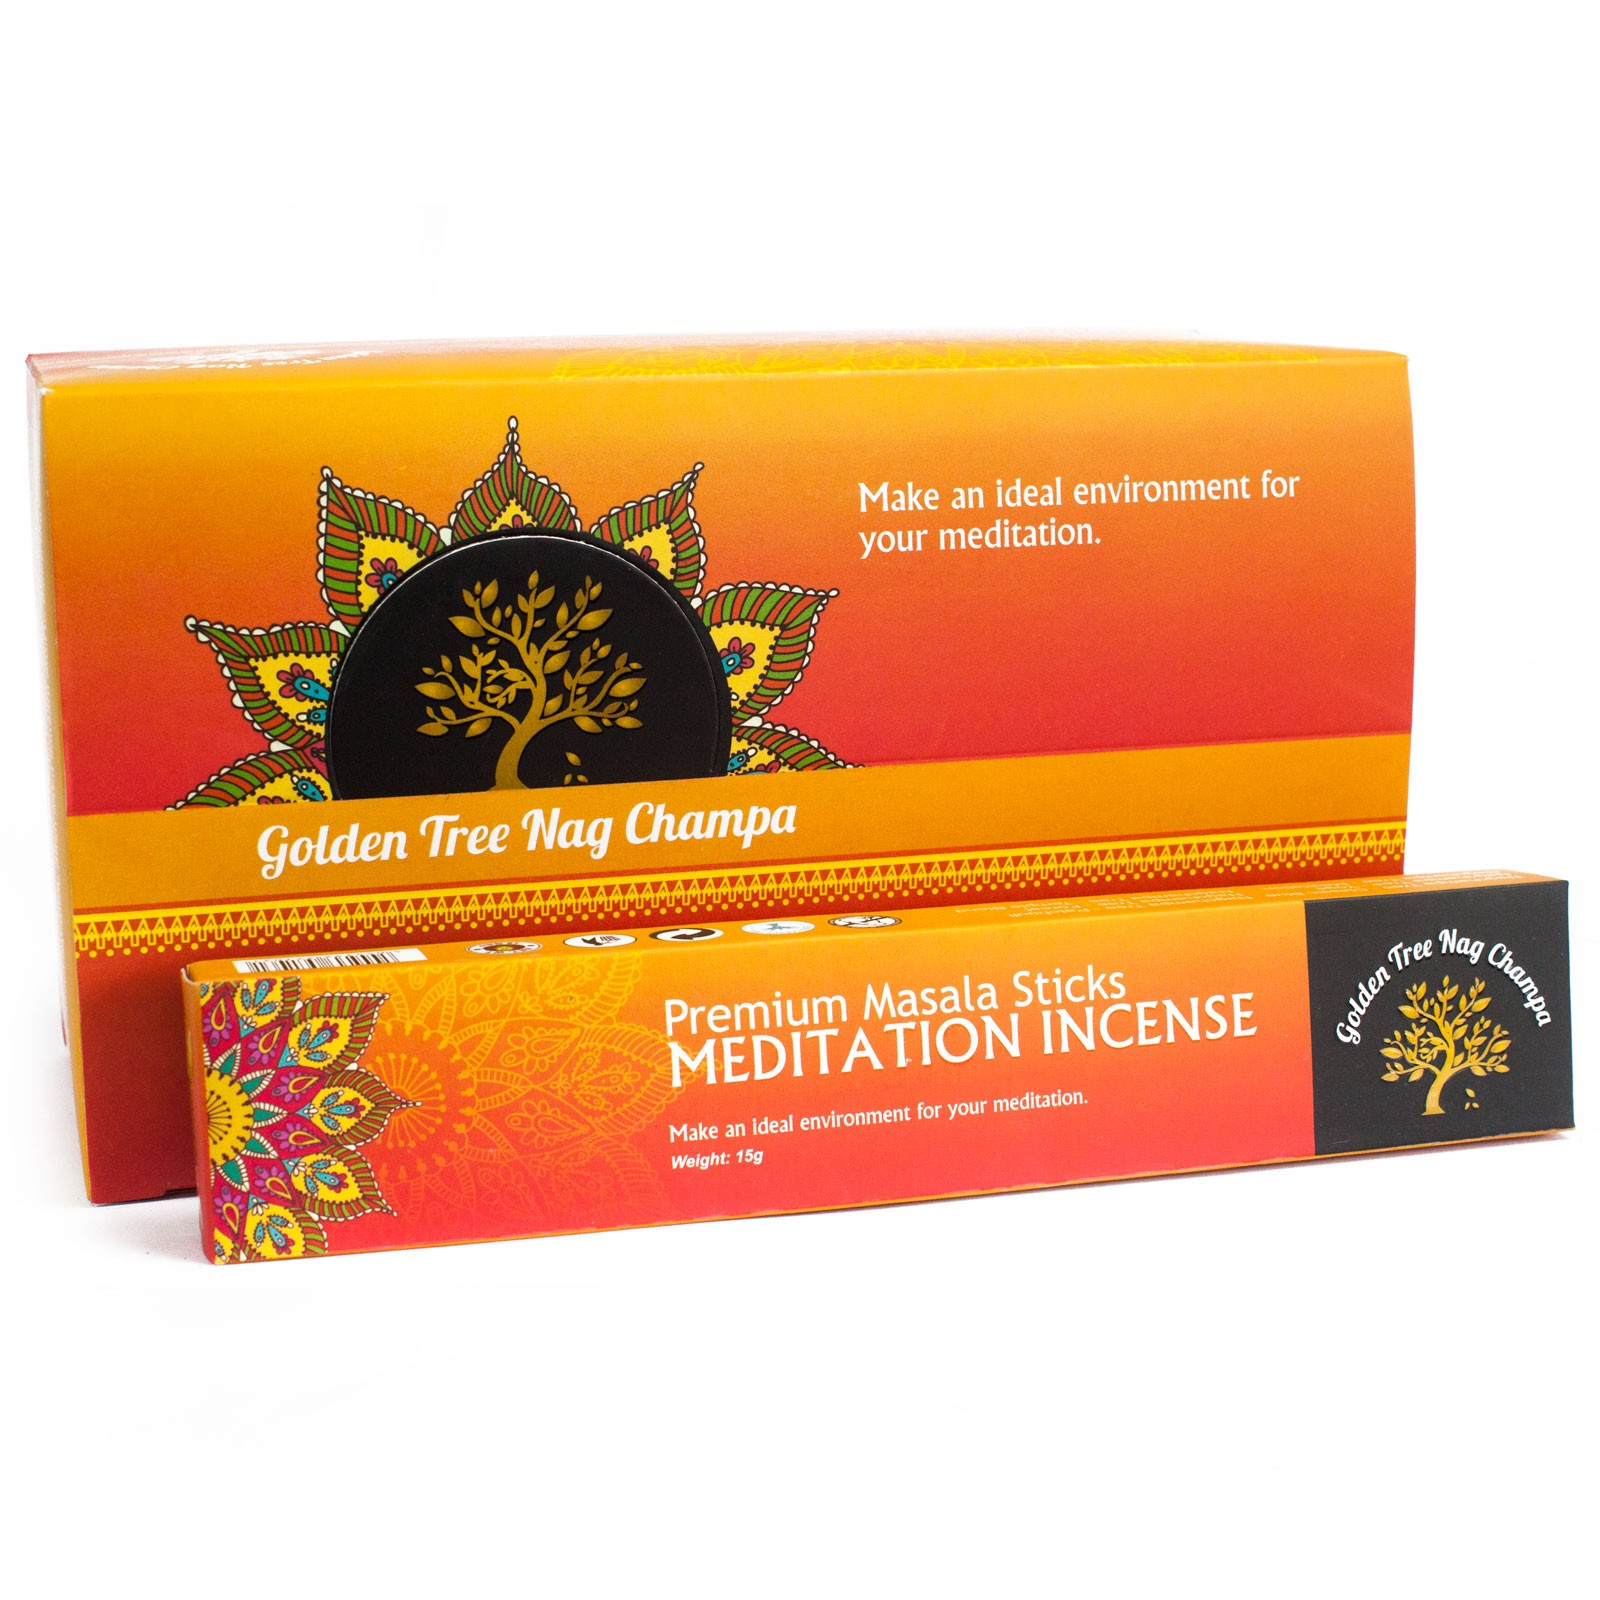 Golden Tree Nag Champa Incense - Meditation